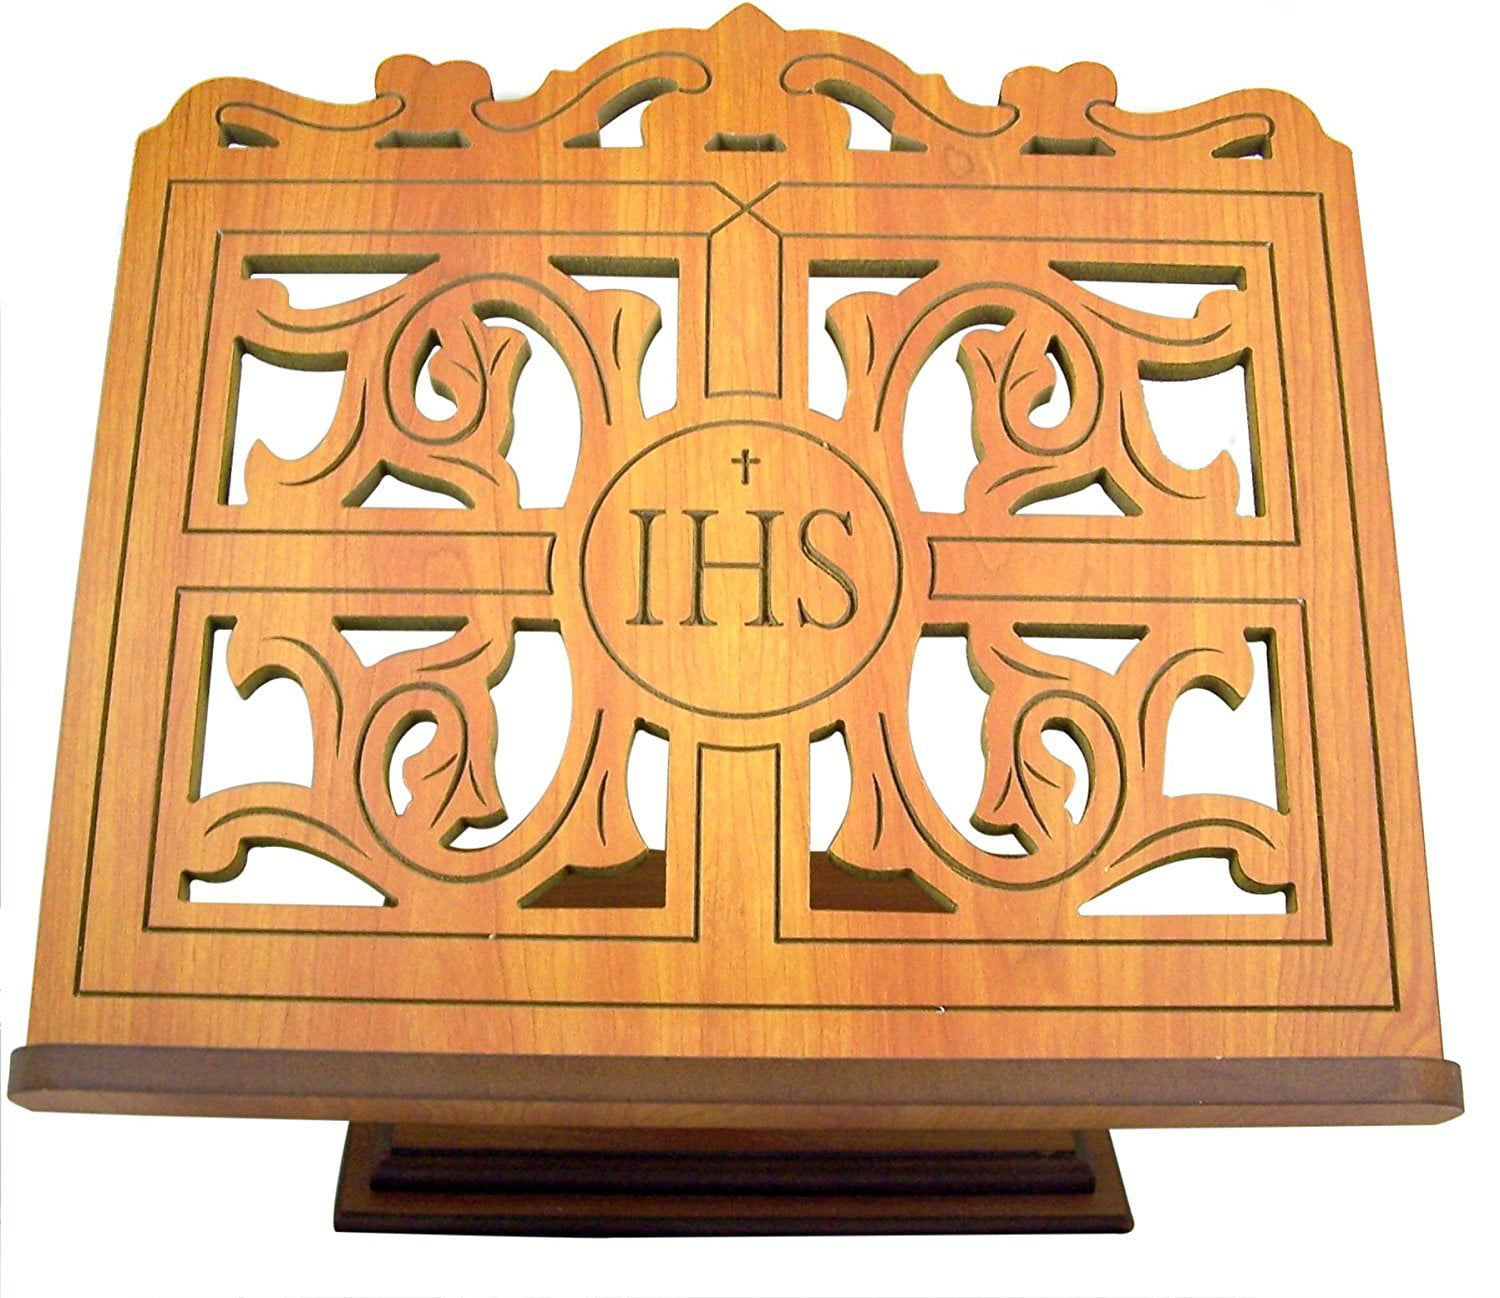 Carved Wood IHS Bible or Book Display Stand with Ledge, Oak, 14 Inch by